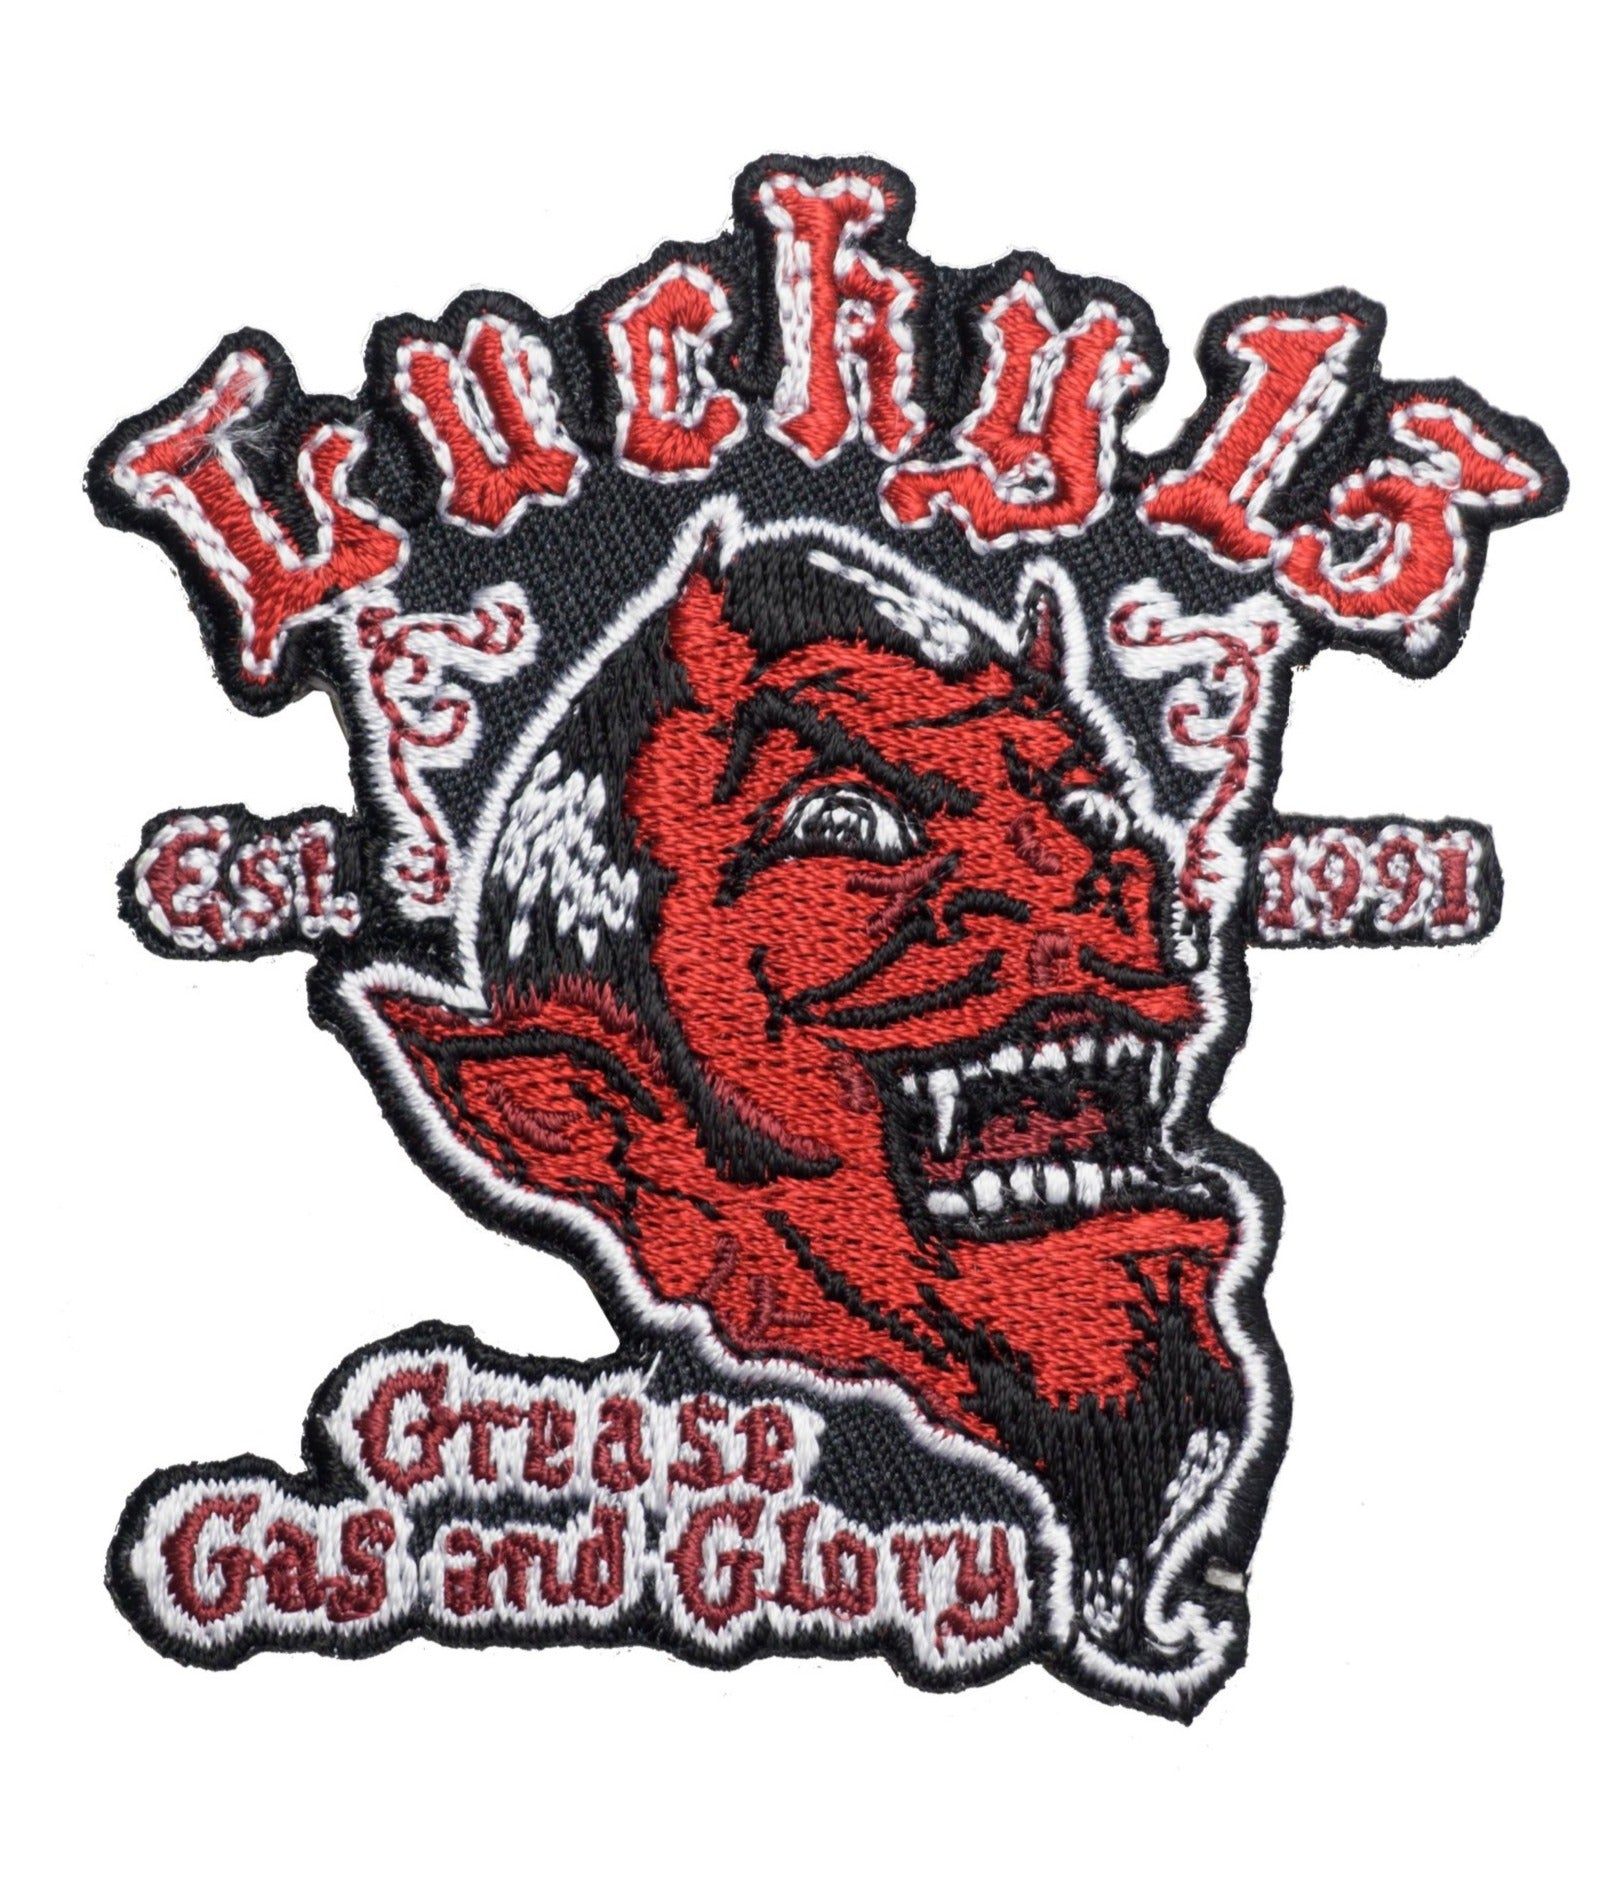 The GREASE, GAS & GLORY Patch